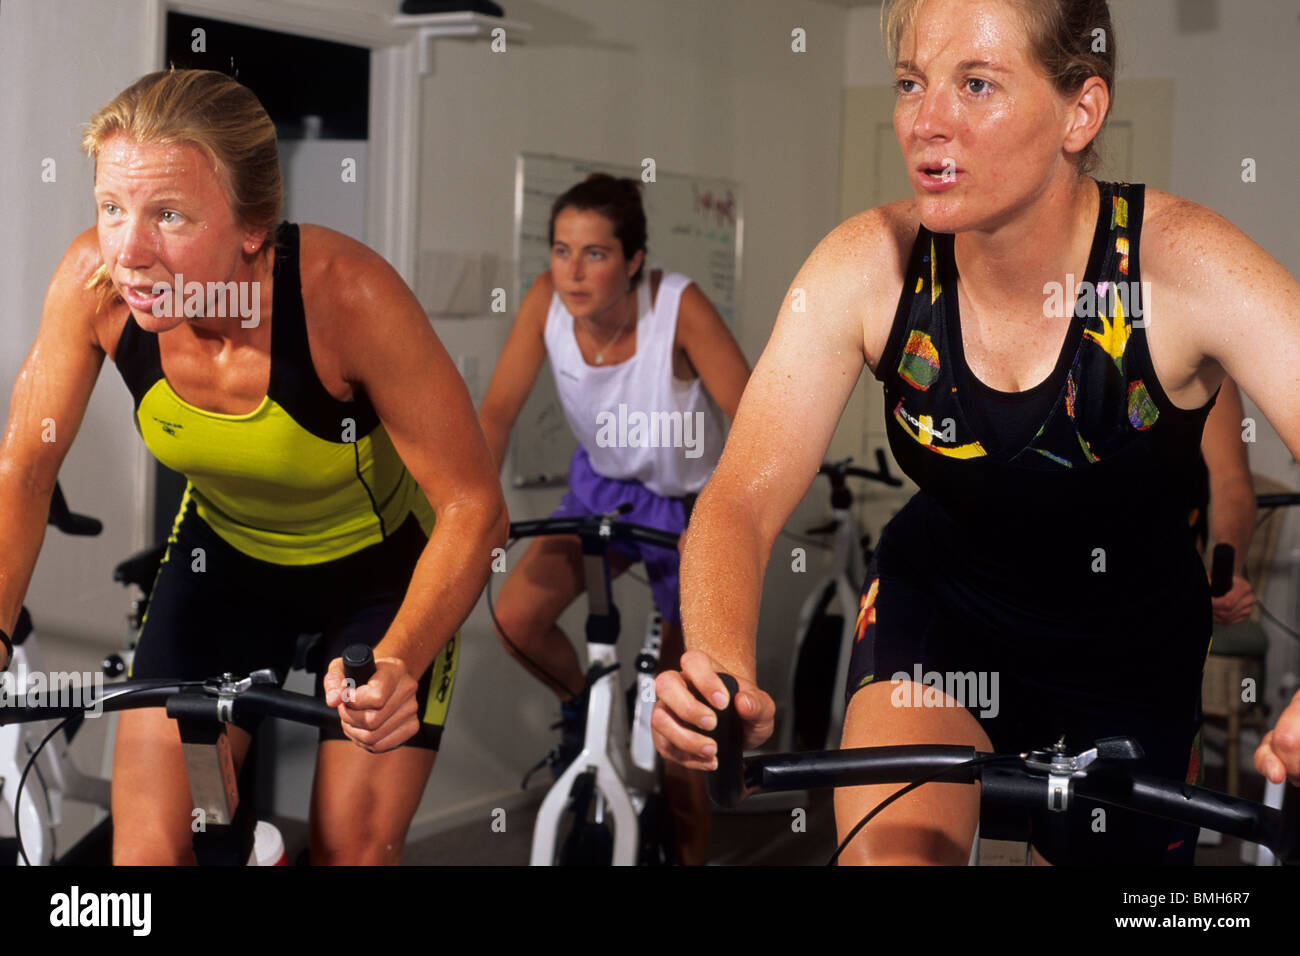 People in a spinning class at the gym. Stock Photo